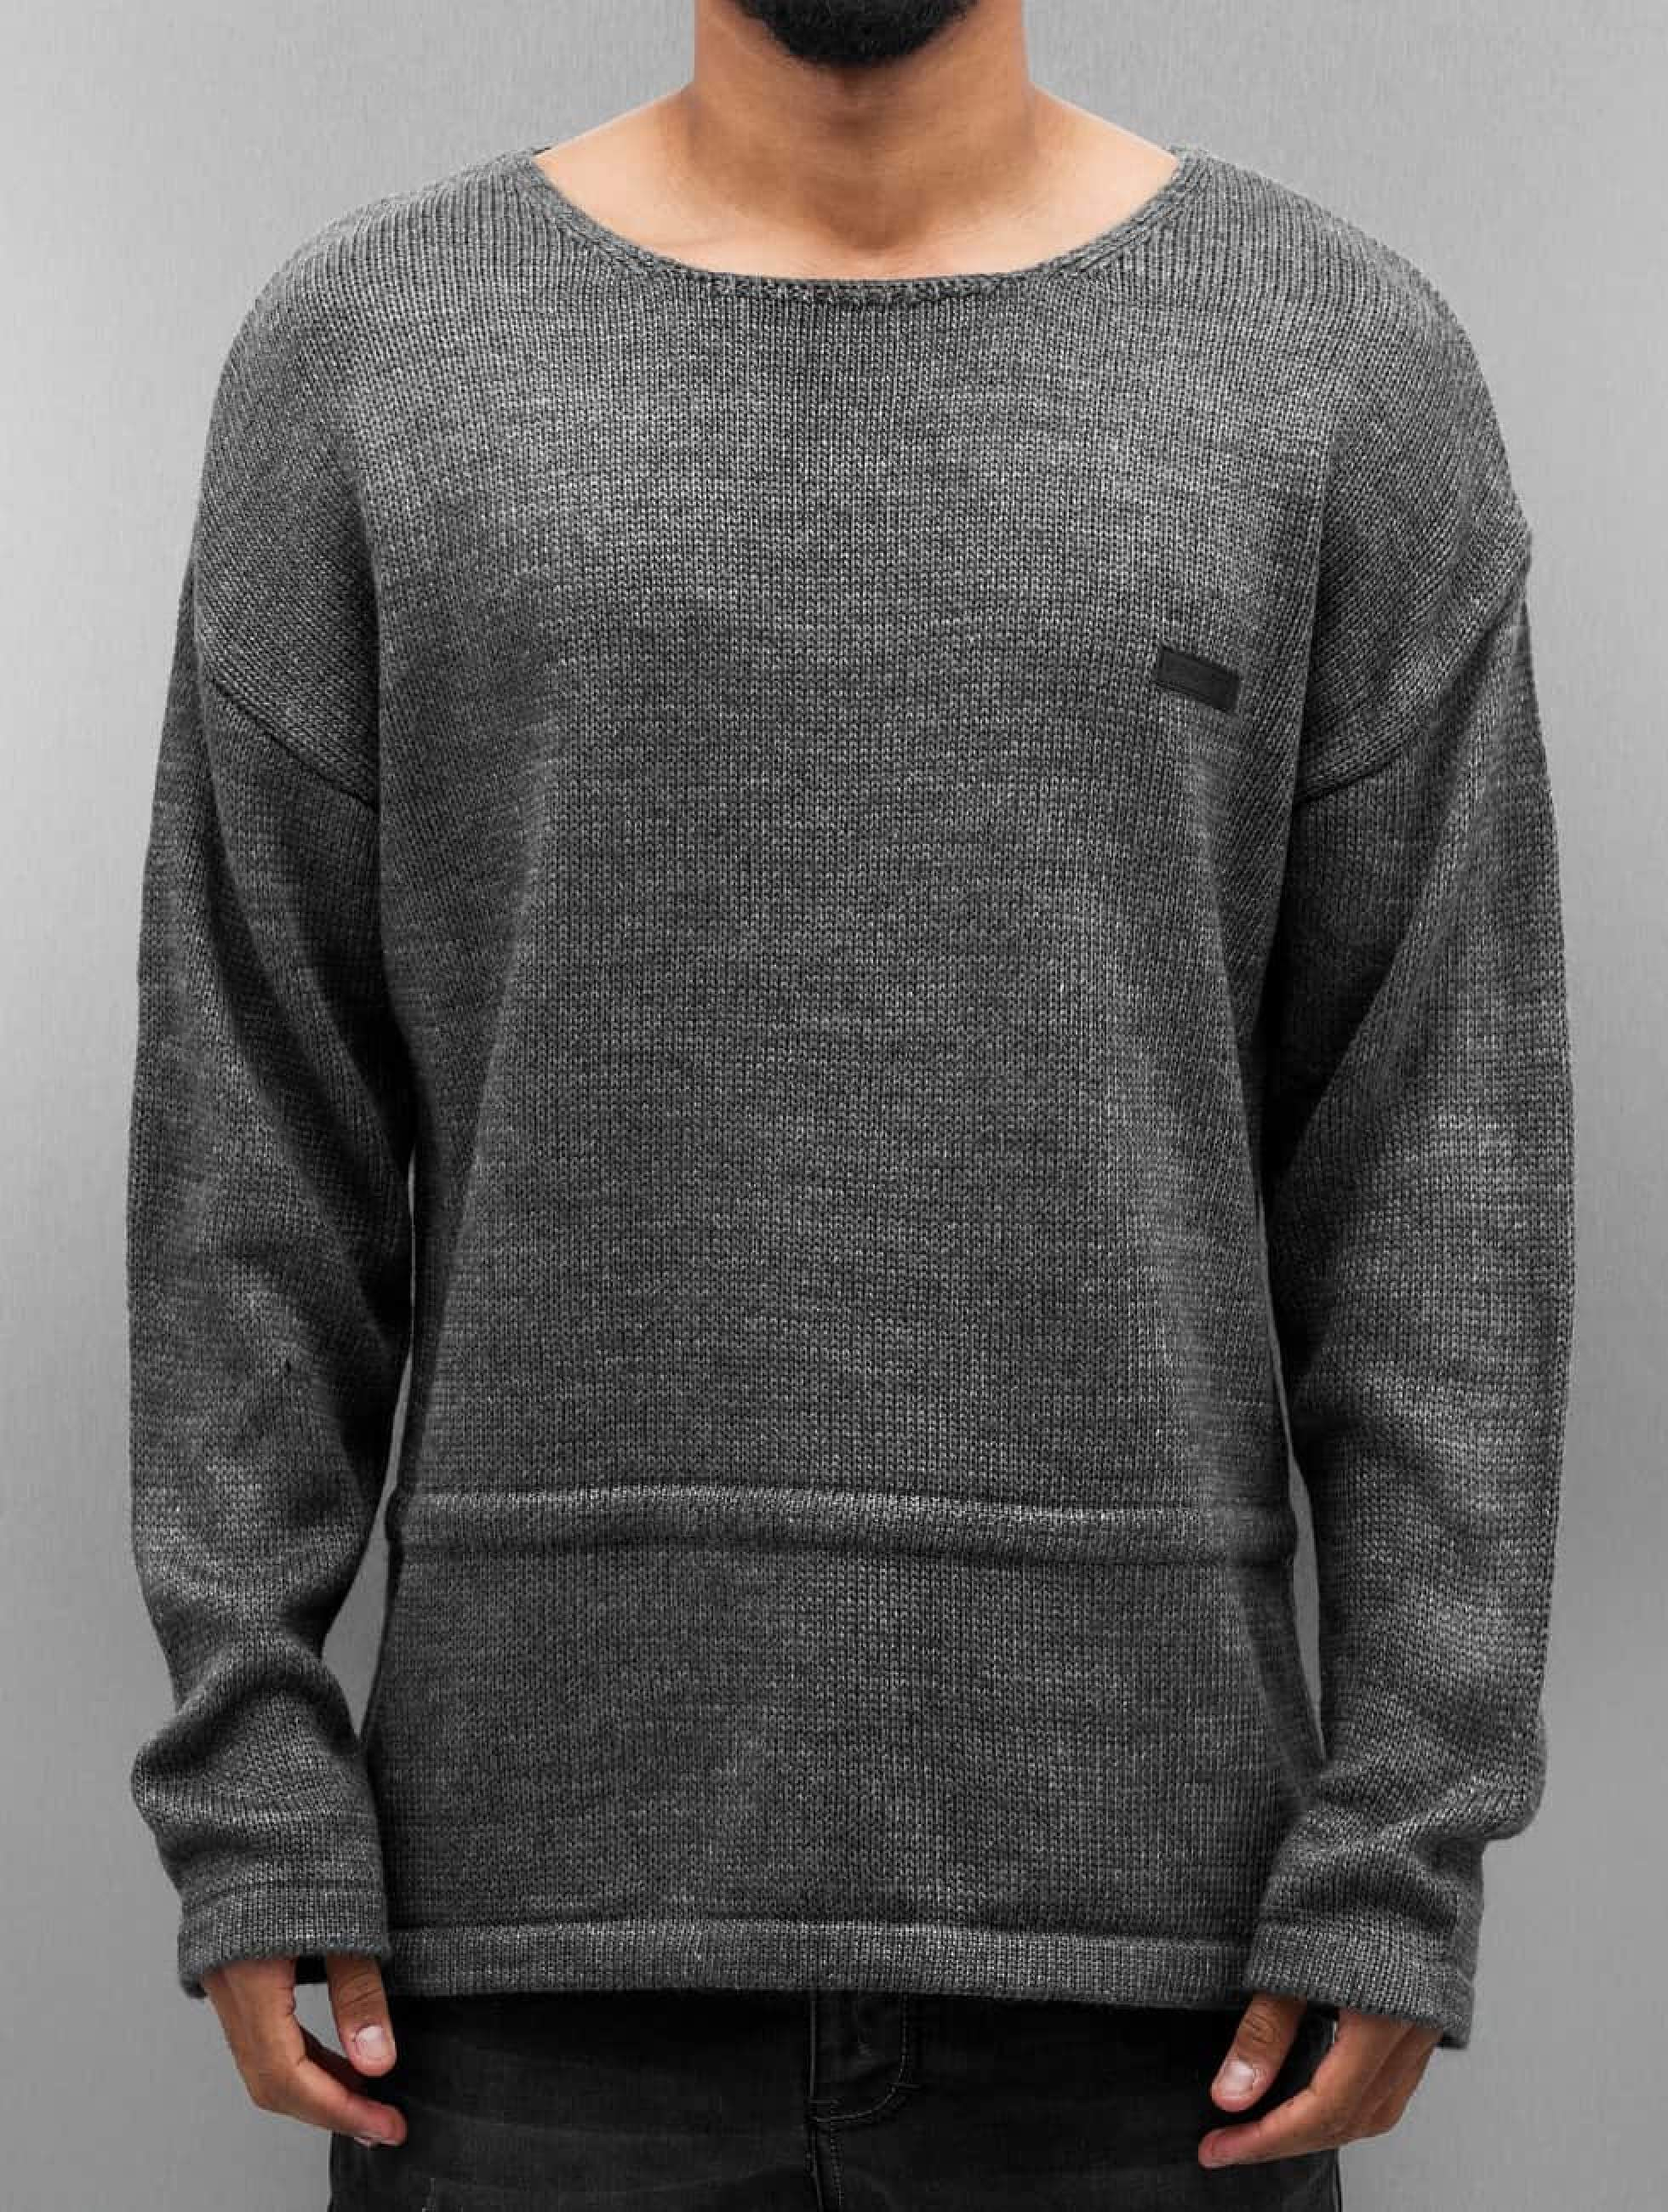 Bangastic / Jumper Oversize Knit II in grey M